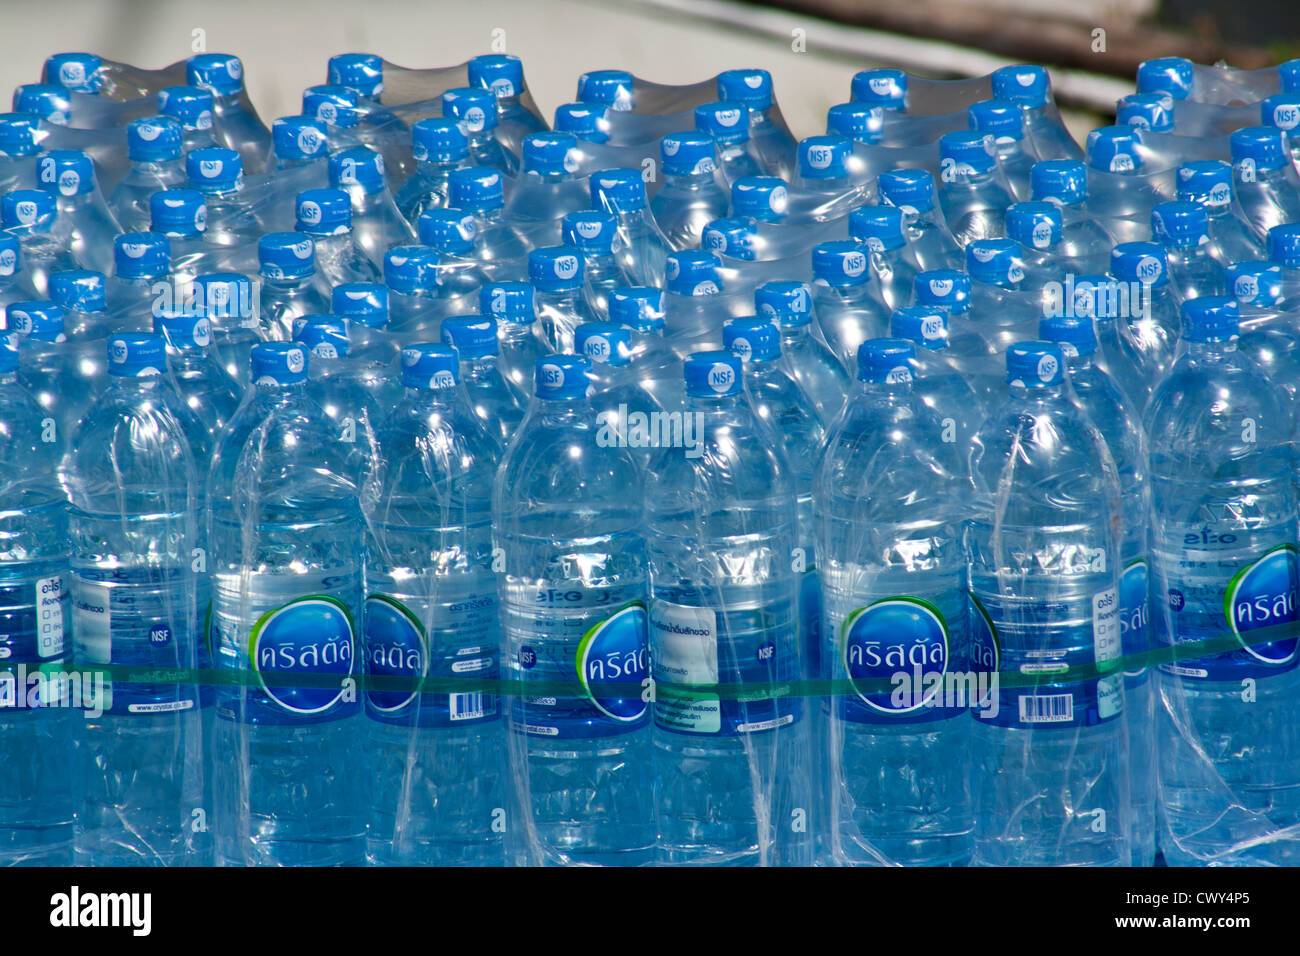 Bottled Water delivery pack - Stock Image